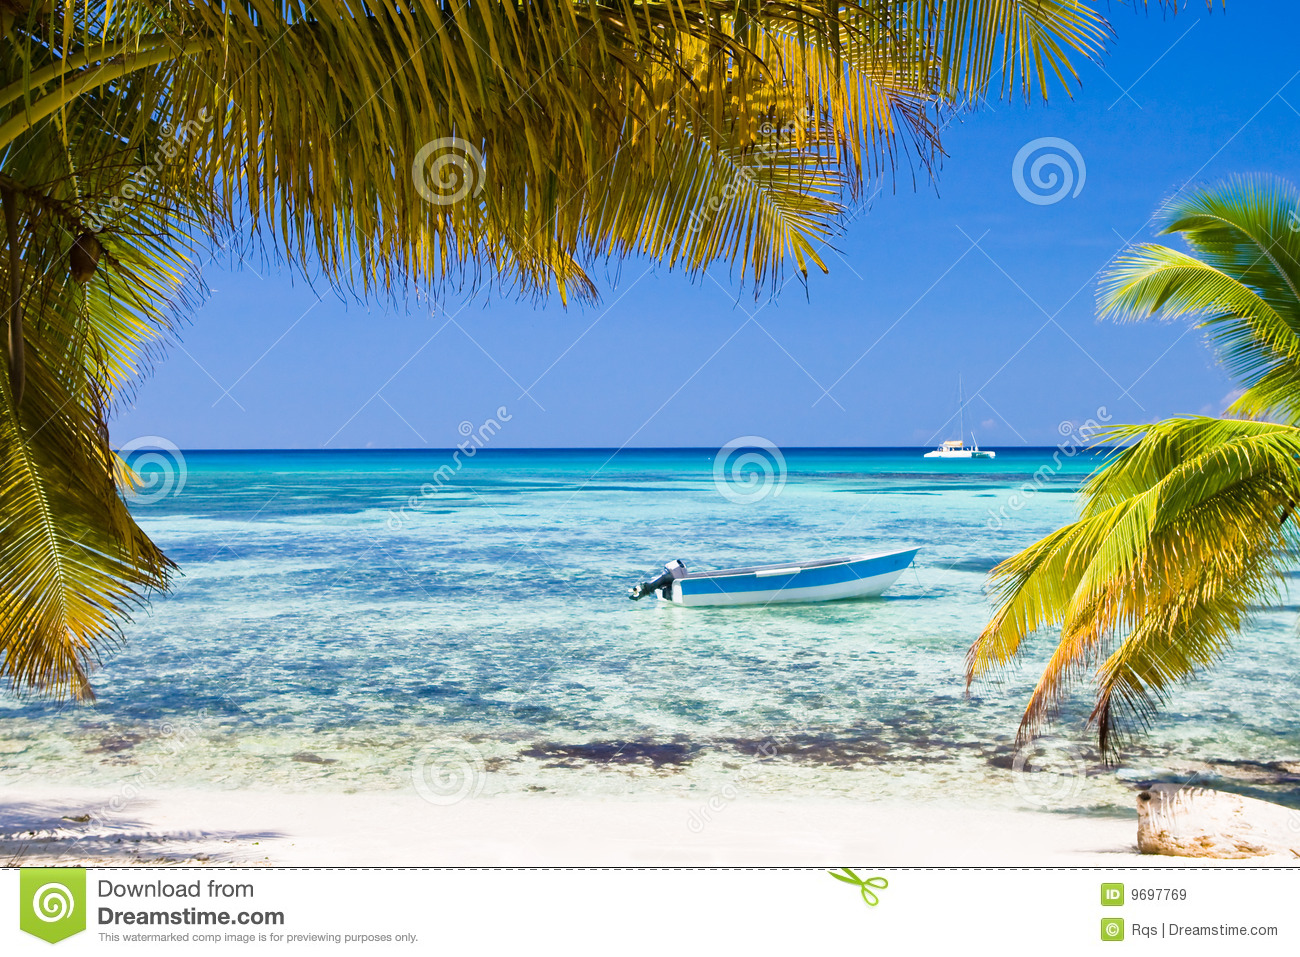 White Sand Beach Boat Blue Ocean Royalty Free Stock Images ...